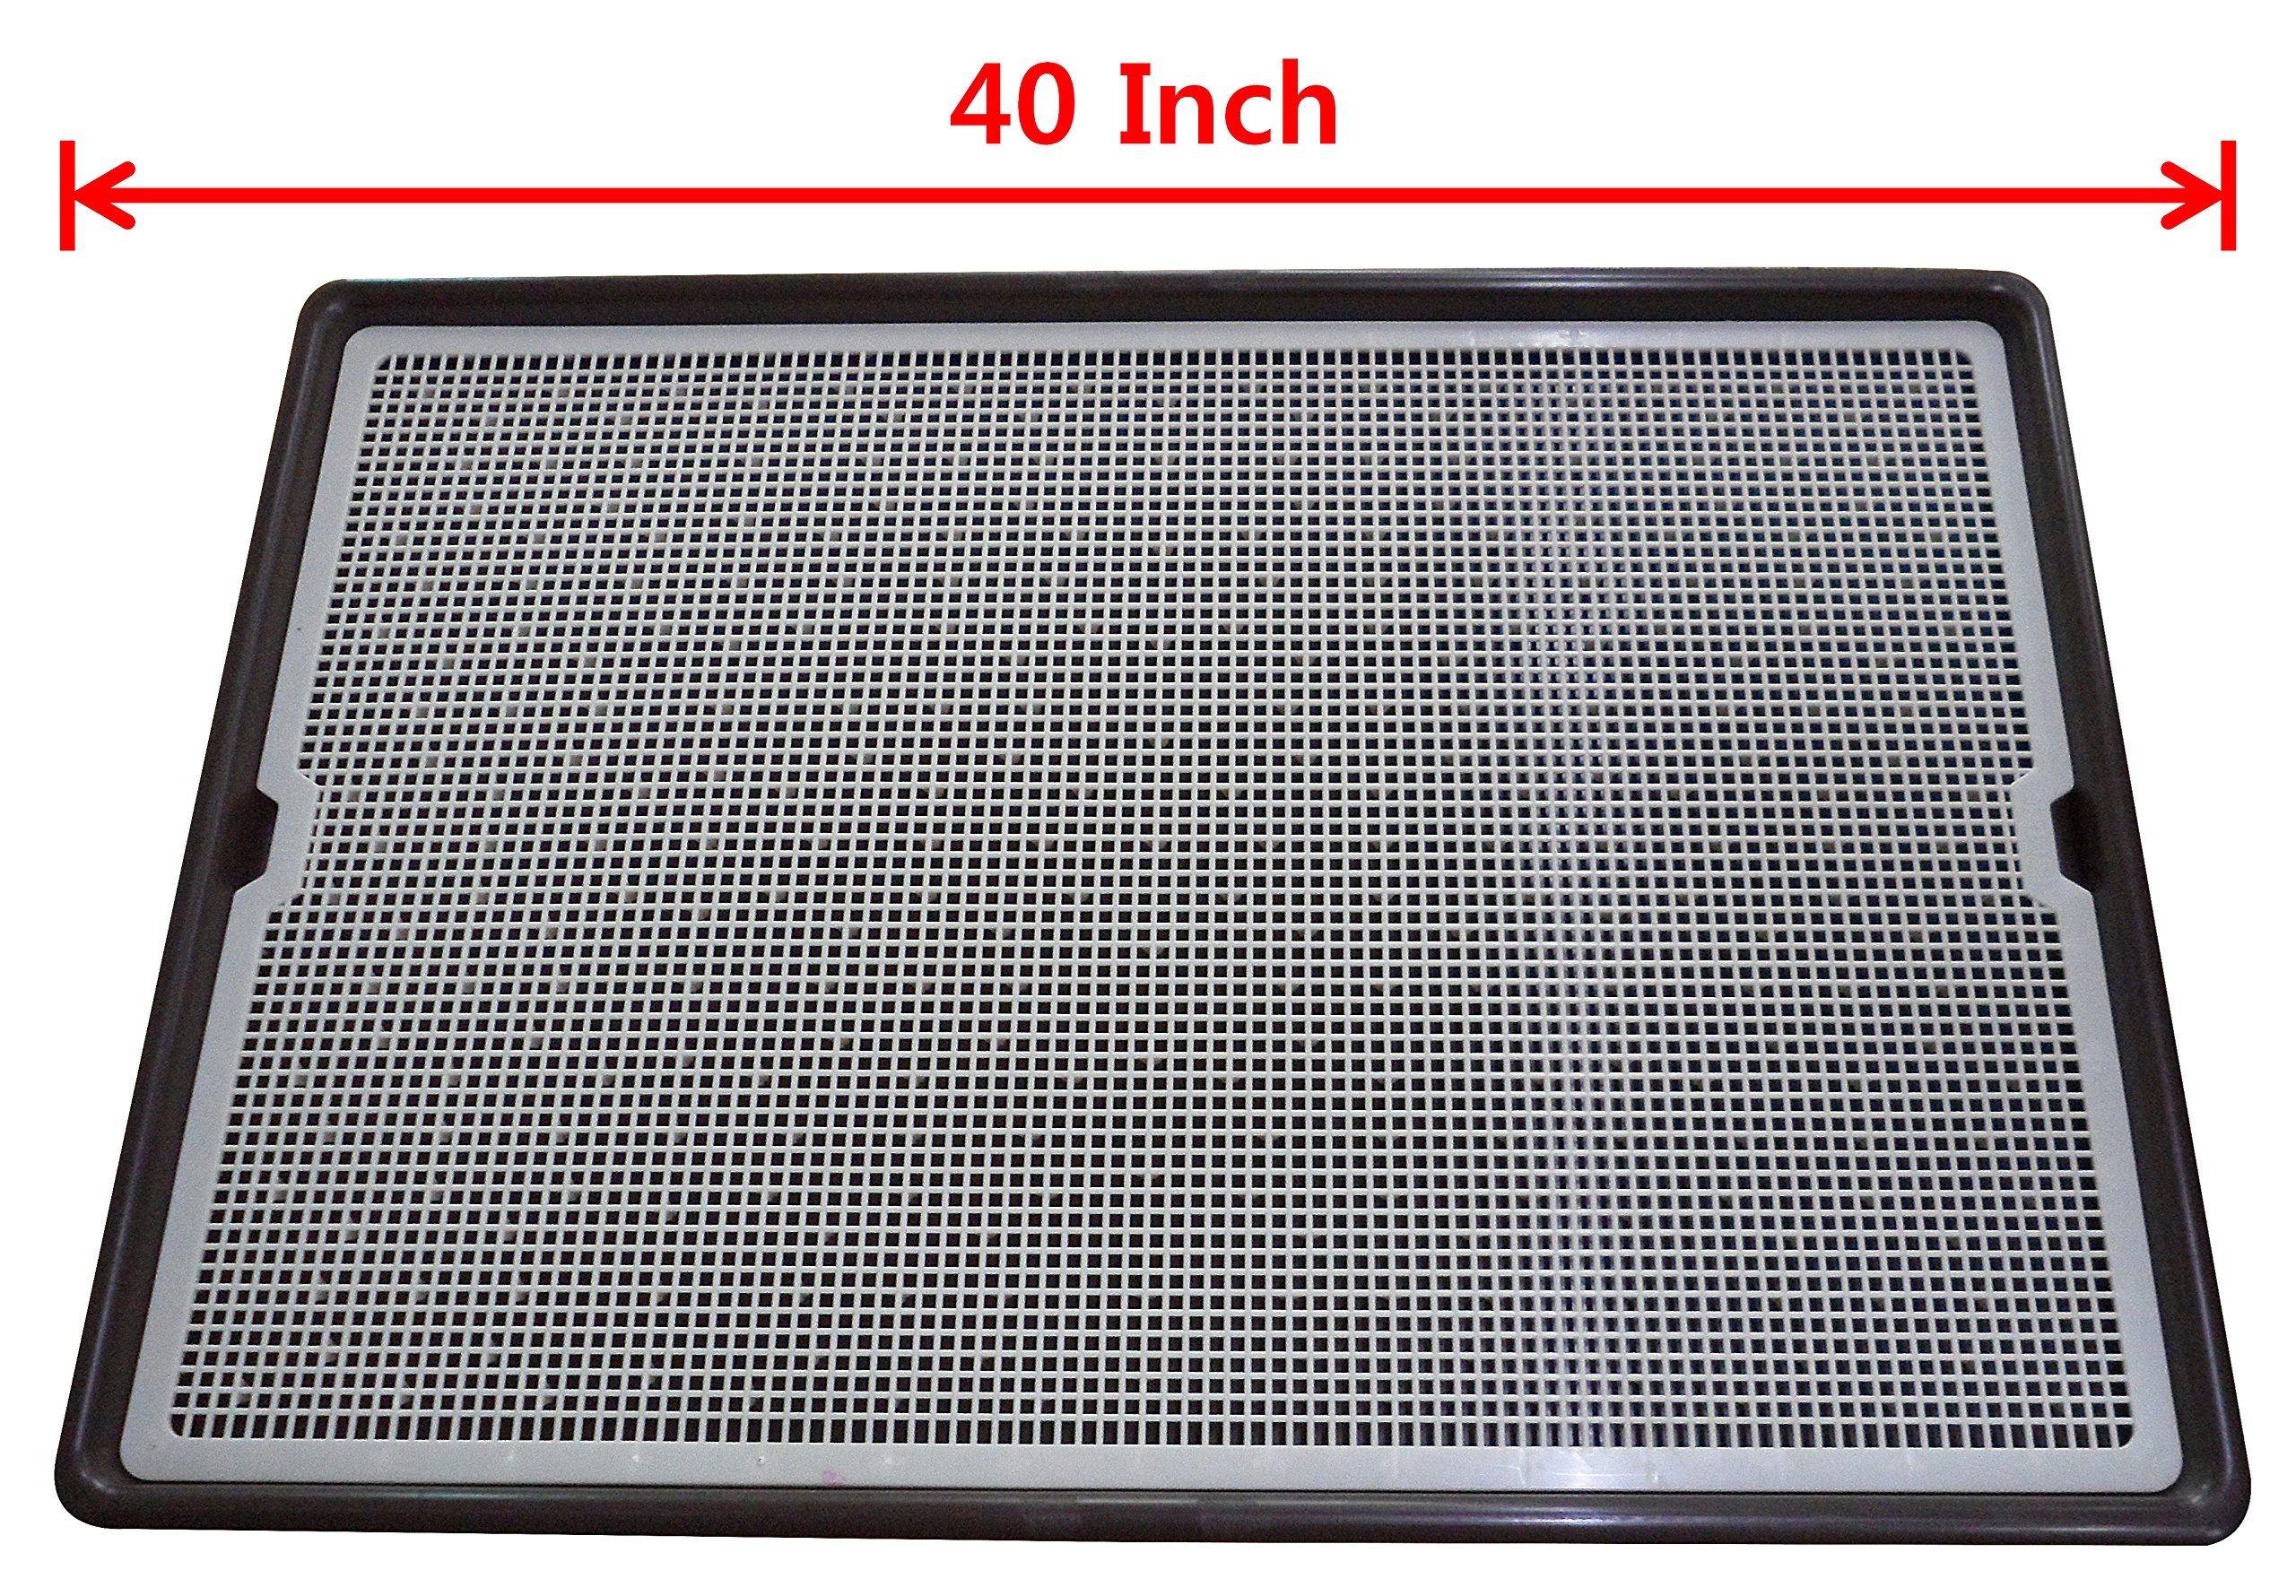 PET TIME GRAND DOG TOILET Pet Dog Cat mesh puppy indoor Potty Toilet Large Big Huge Clean Protect Floor toilet litter tray pan Training pad holder AMT-1100